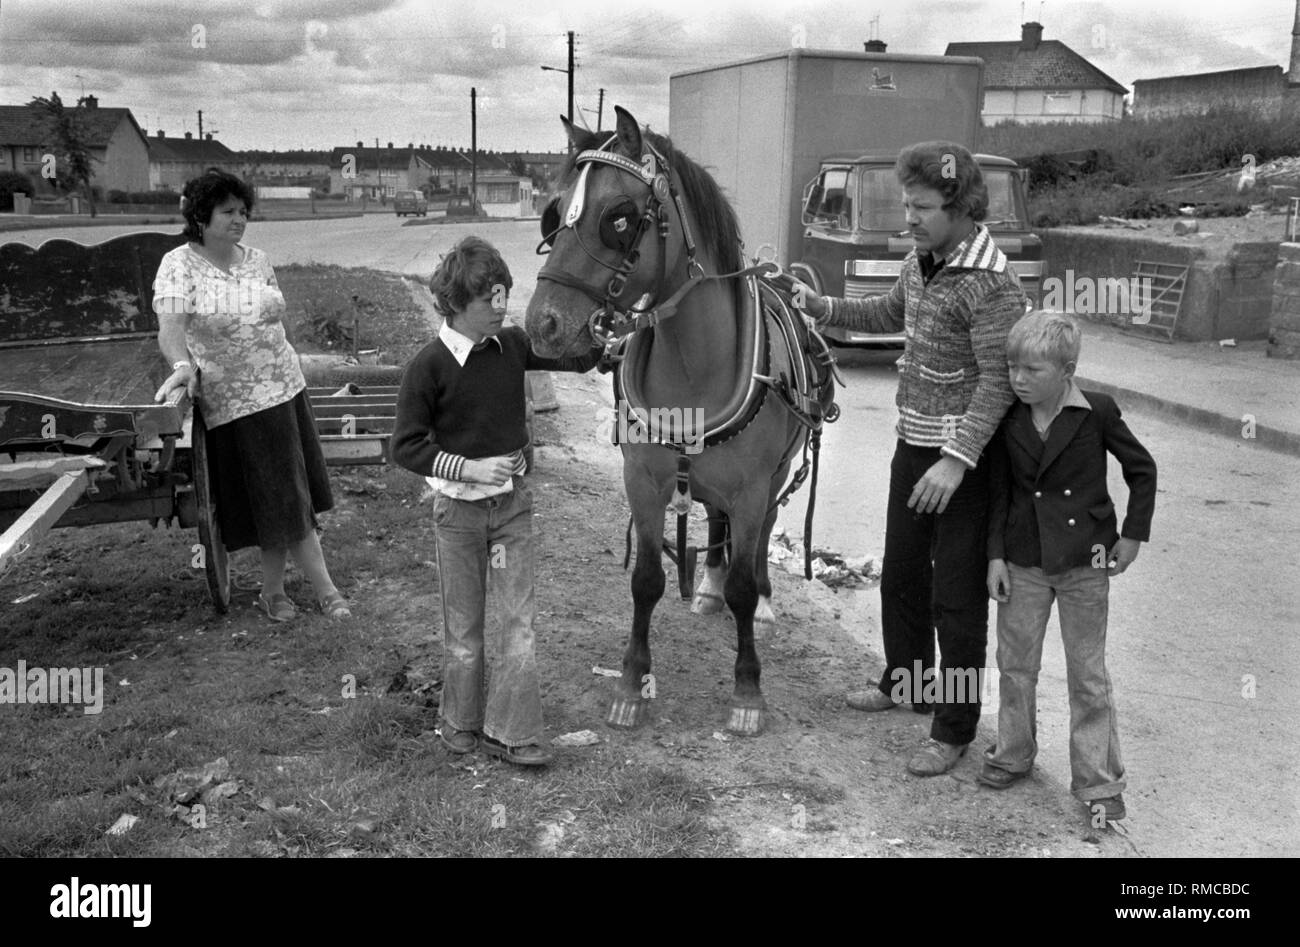 1970s Irish family group with their pet horse Limerick, in County Limerick, Eire.  West Coast of Southern Ireland 70s HOMER SYKES - Stock Image